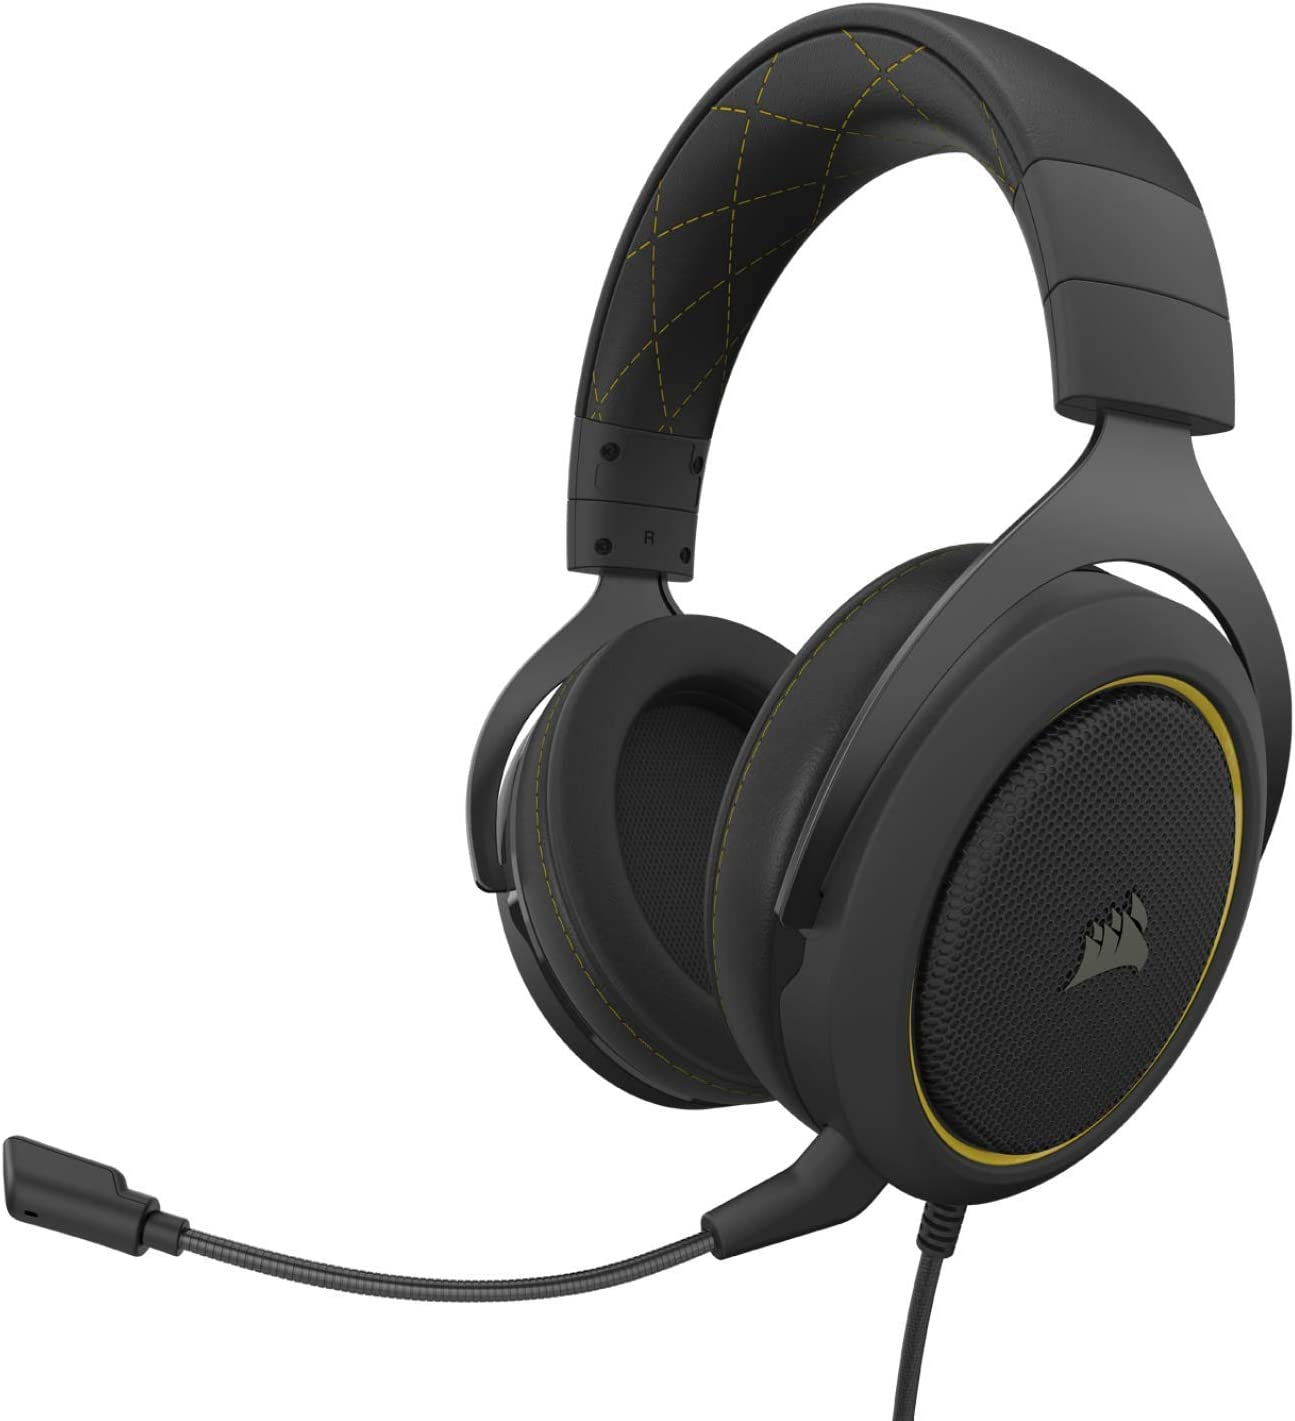 Corsair HS60 Pro – 7.1 Virtual Surround Sound PC Gaming Headset w/USB DAC - Discord Certified Headphones – Compatible with Xbox One, PS4, and Nintendo Switch – Yellow